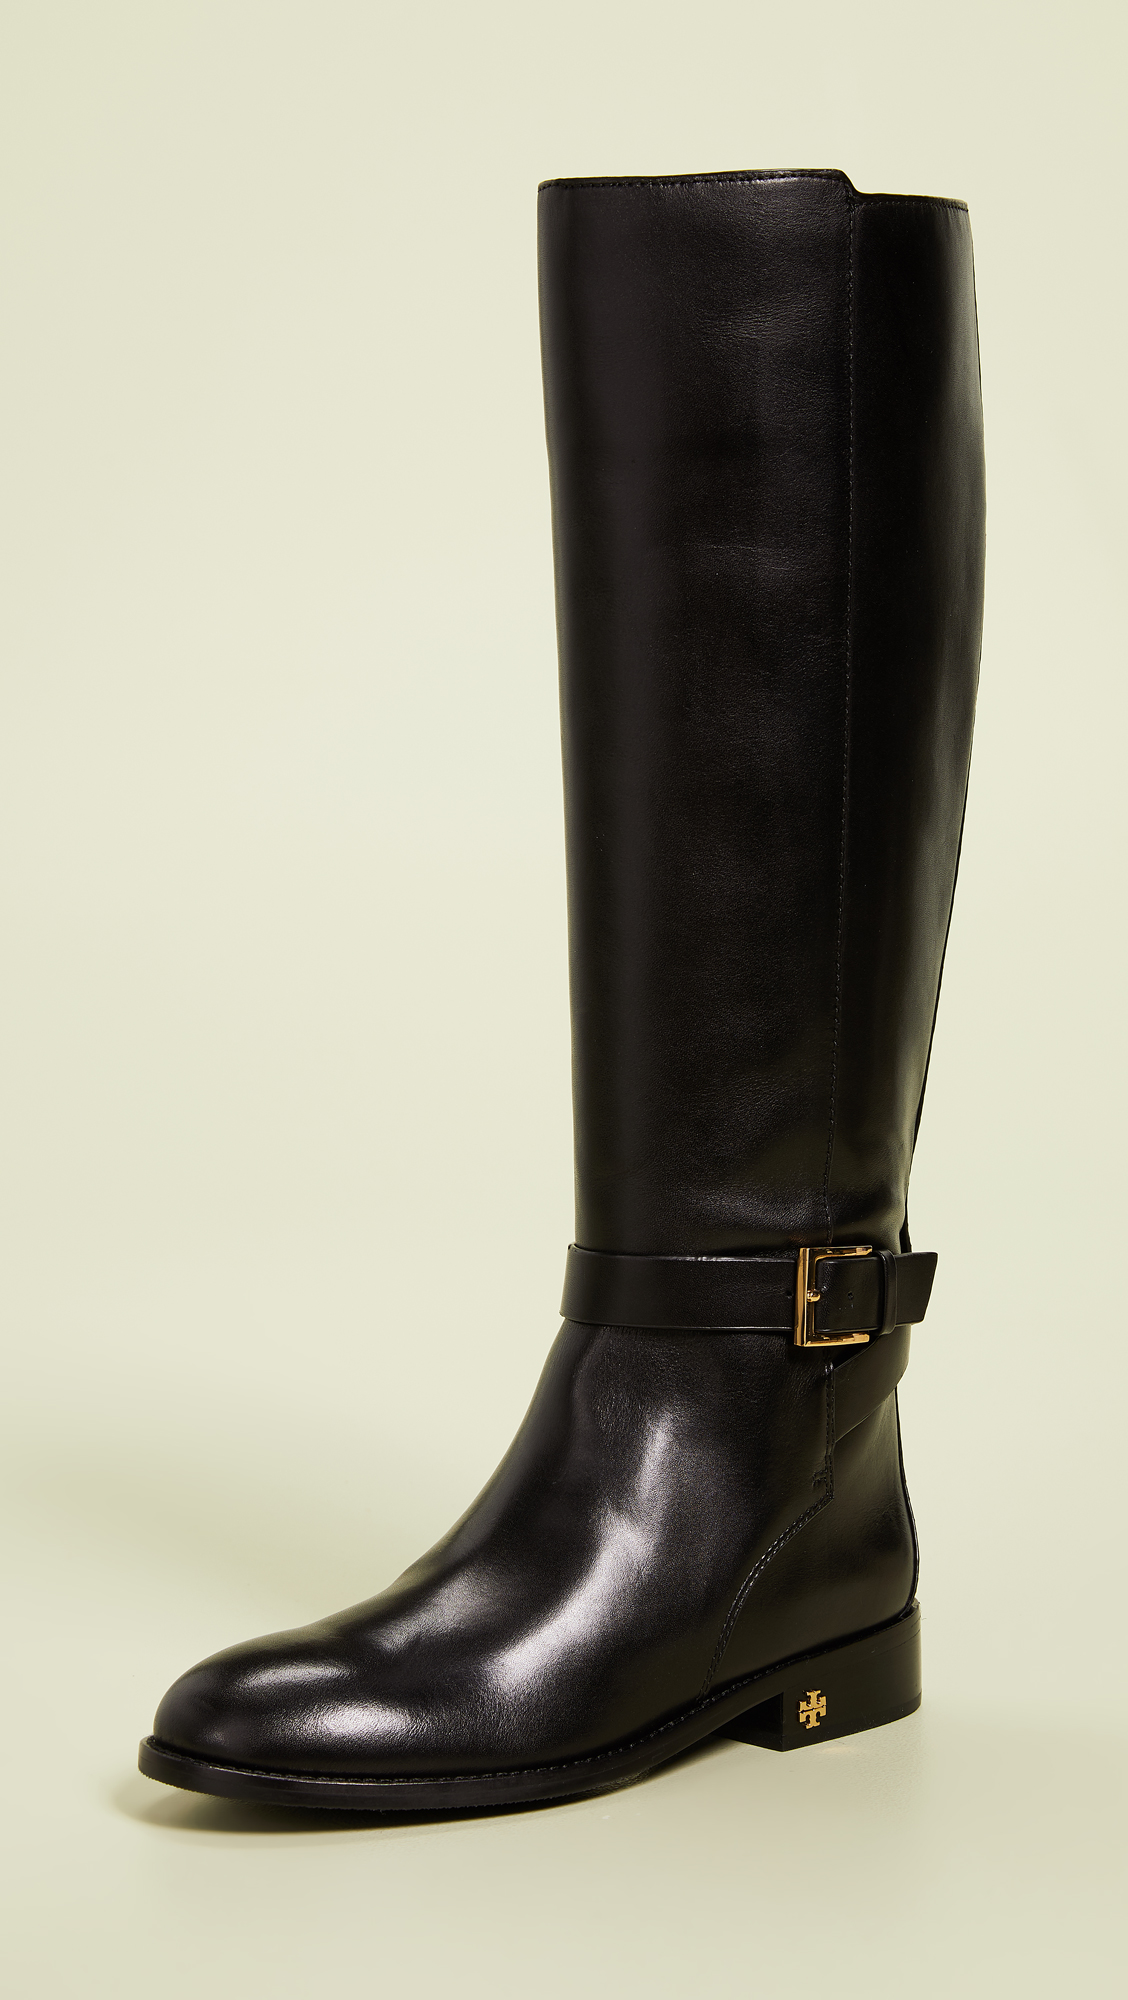 aa350cc9801 tory-burch-riding-boots-tall-black-leather-knee-high - Katie Considers